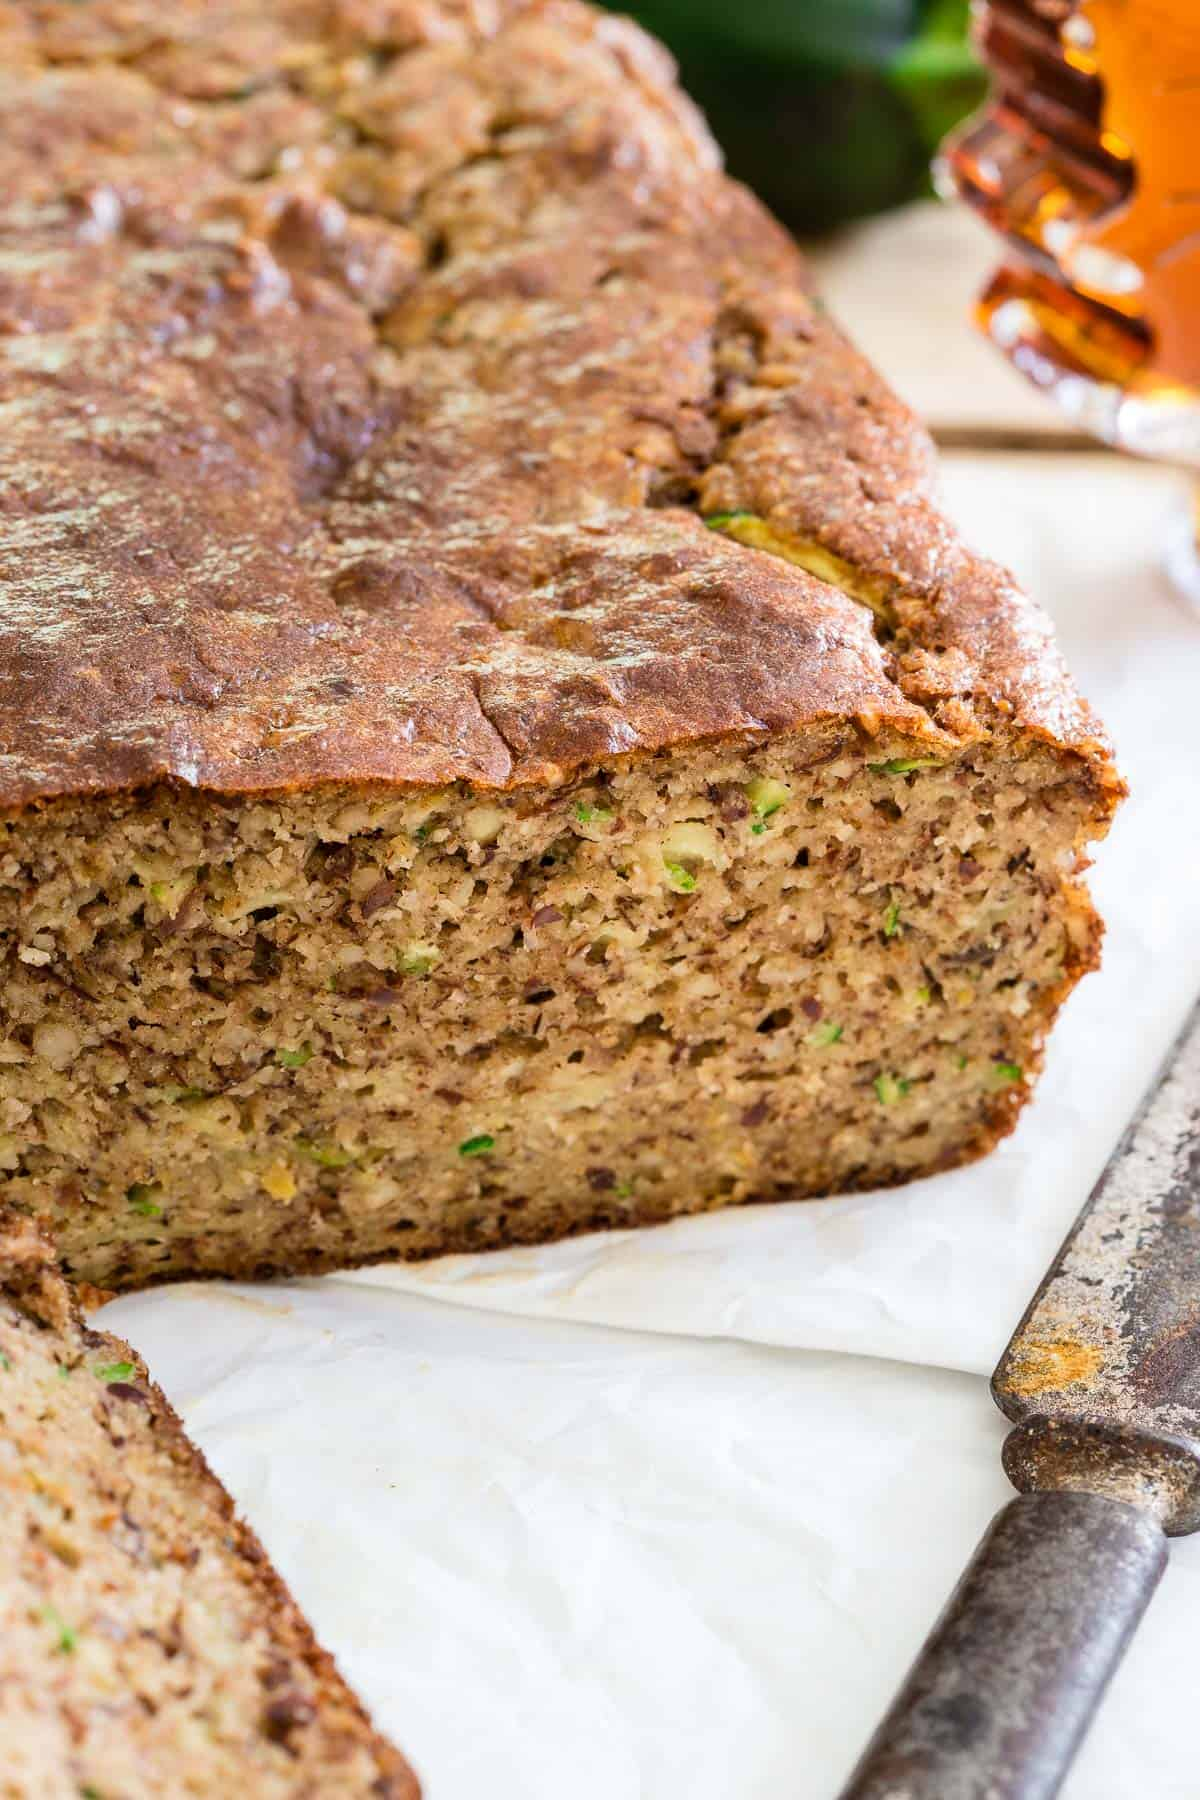 Paleo Almond Zucchini Bread is a grain free, gluten free, dairy free treat perfect for the end of the summer season.